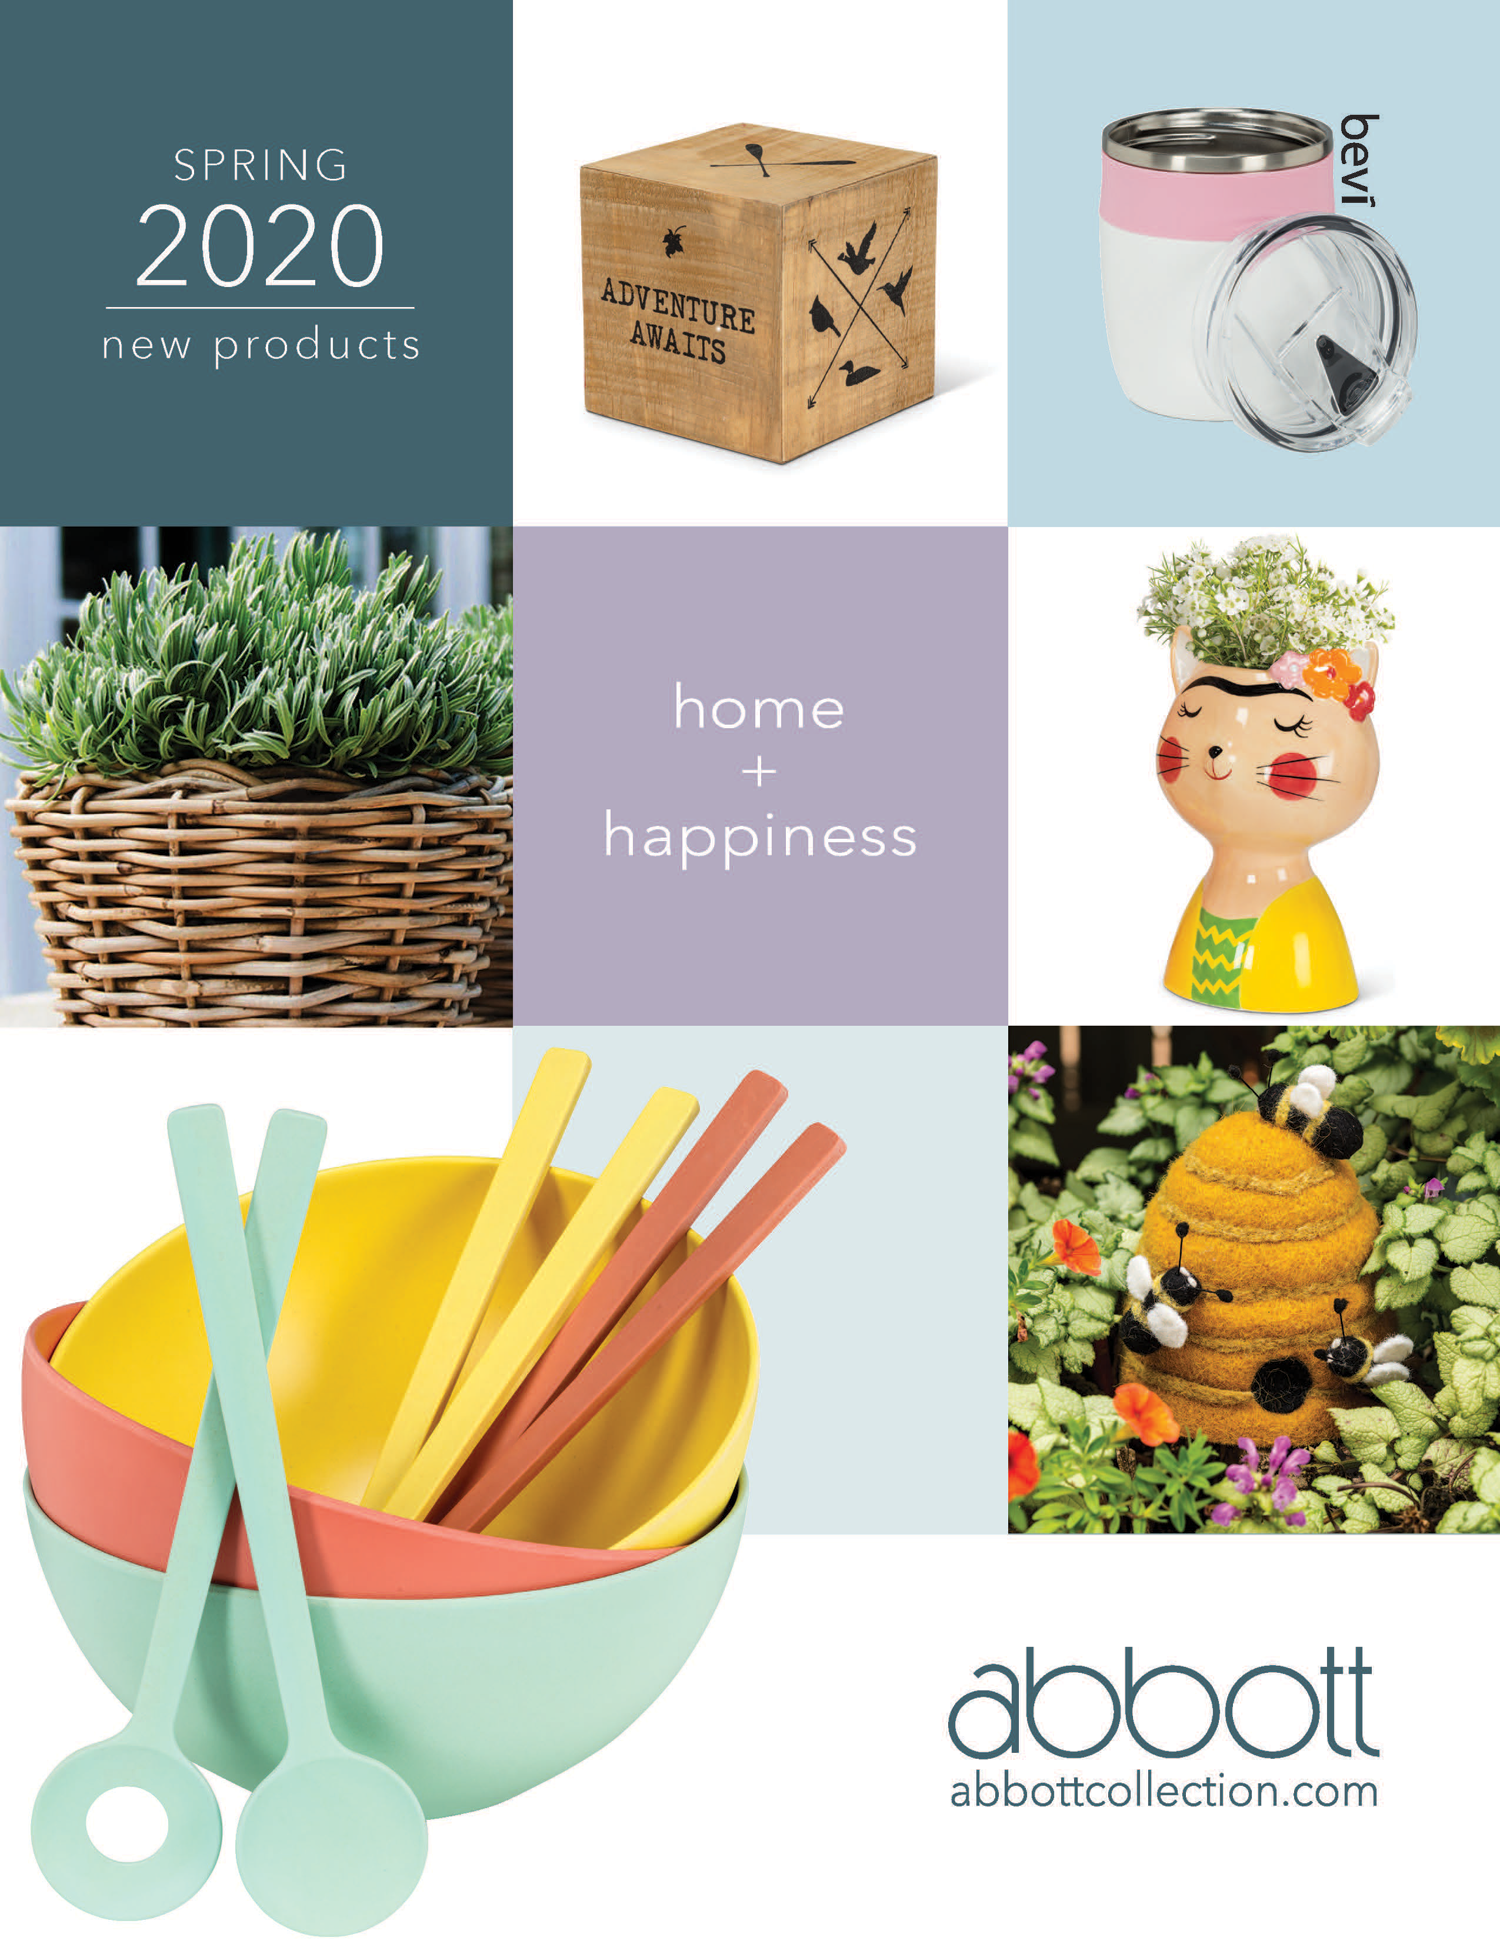 https://assets.abbottcollection.com/wp-content/uploads/2020/02/05112233/New-Products-September-2019.png